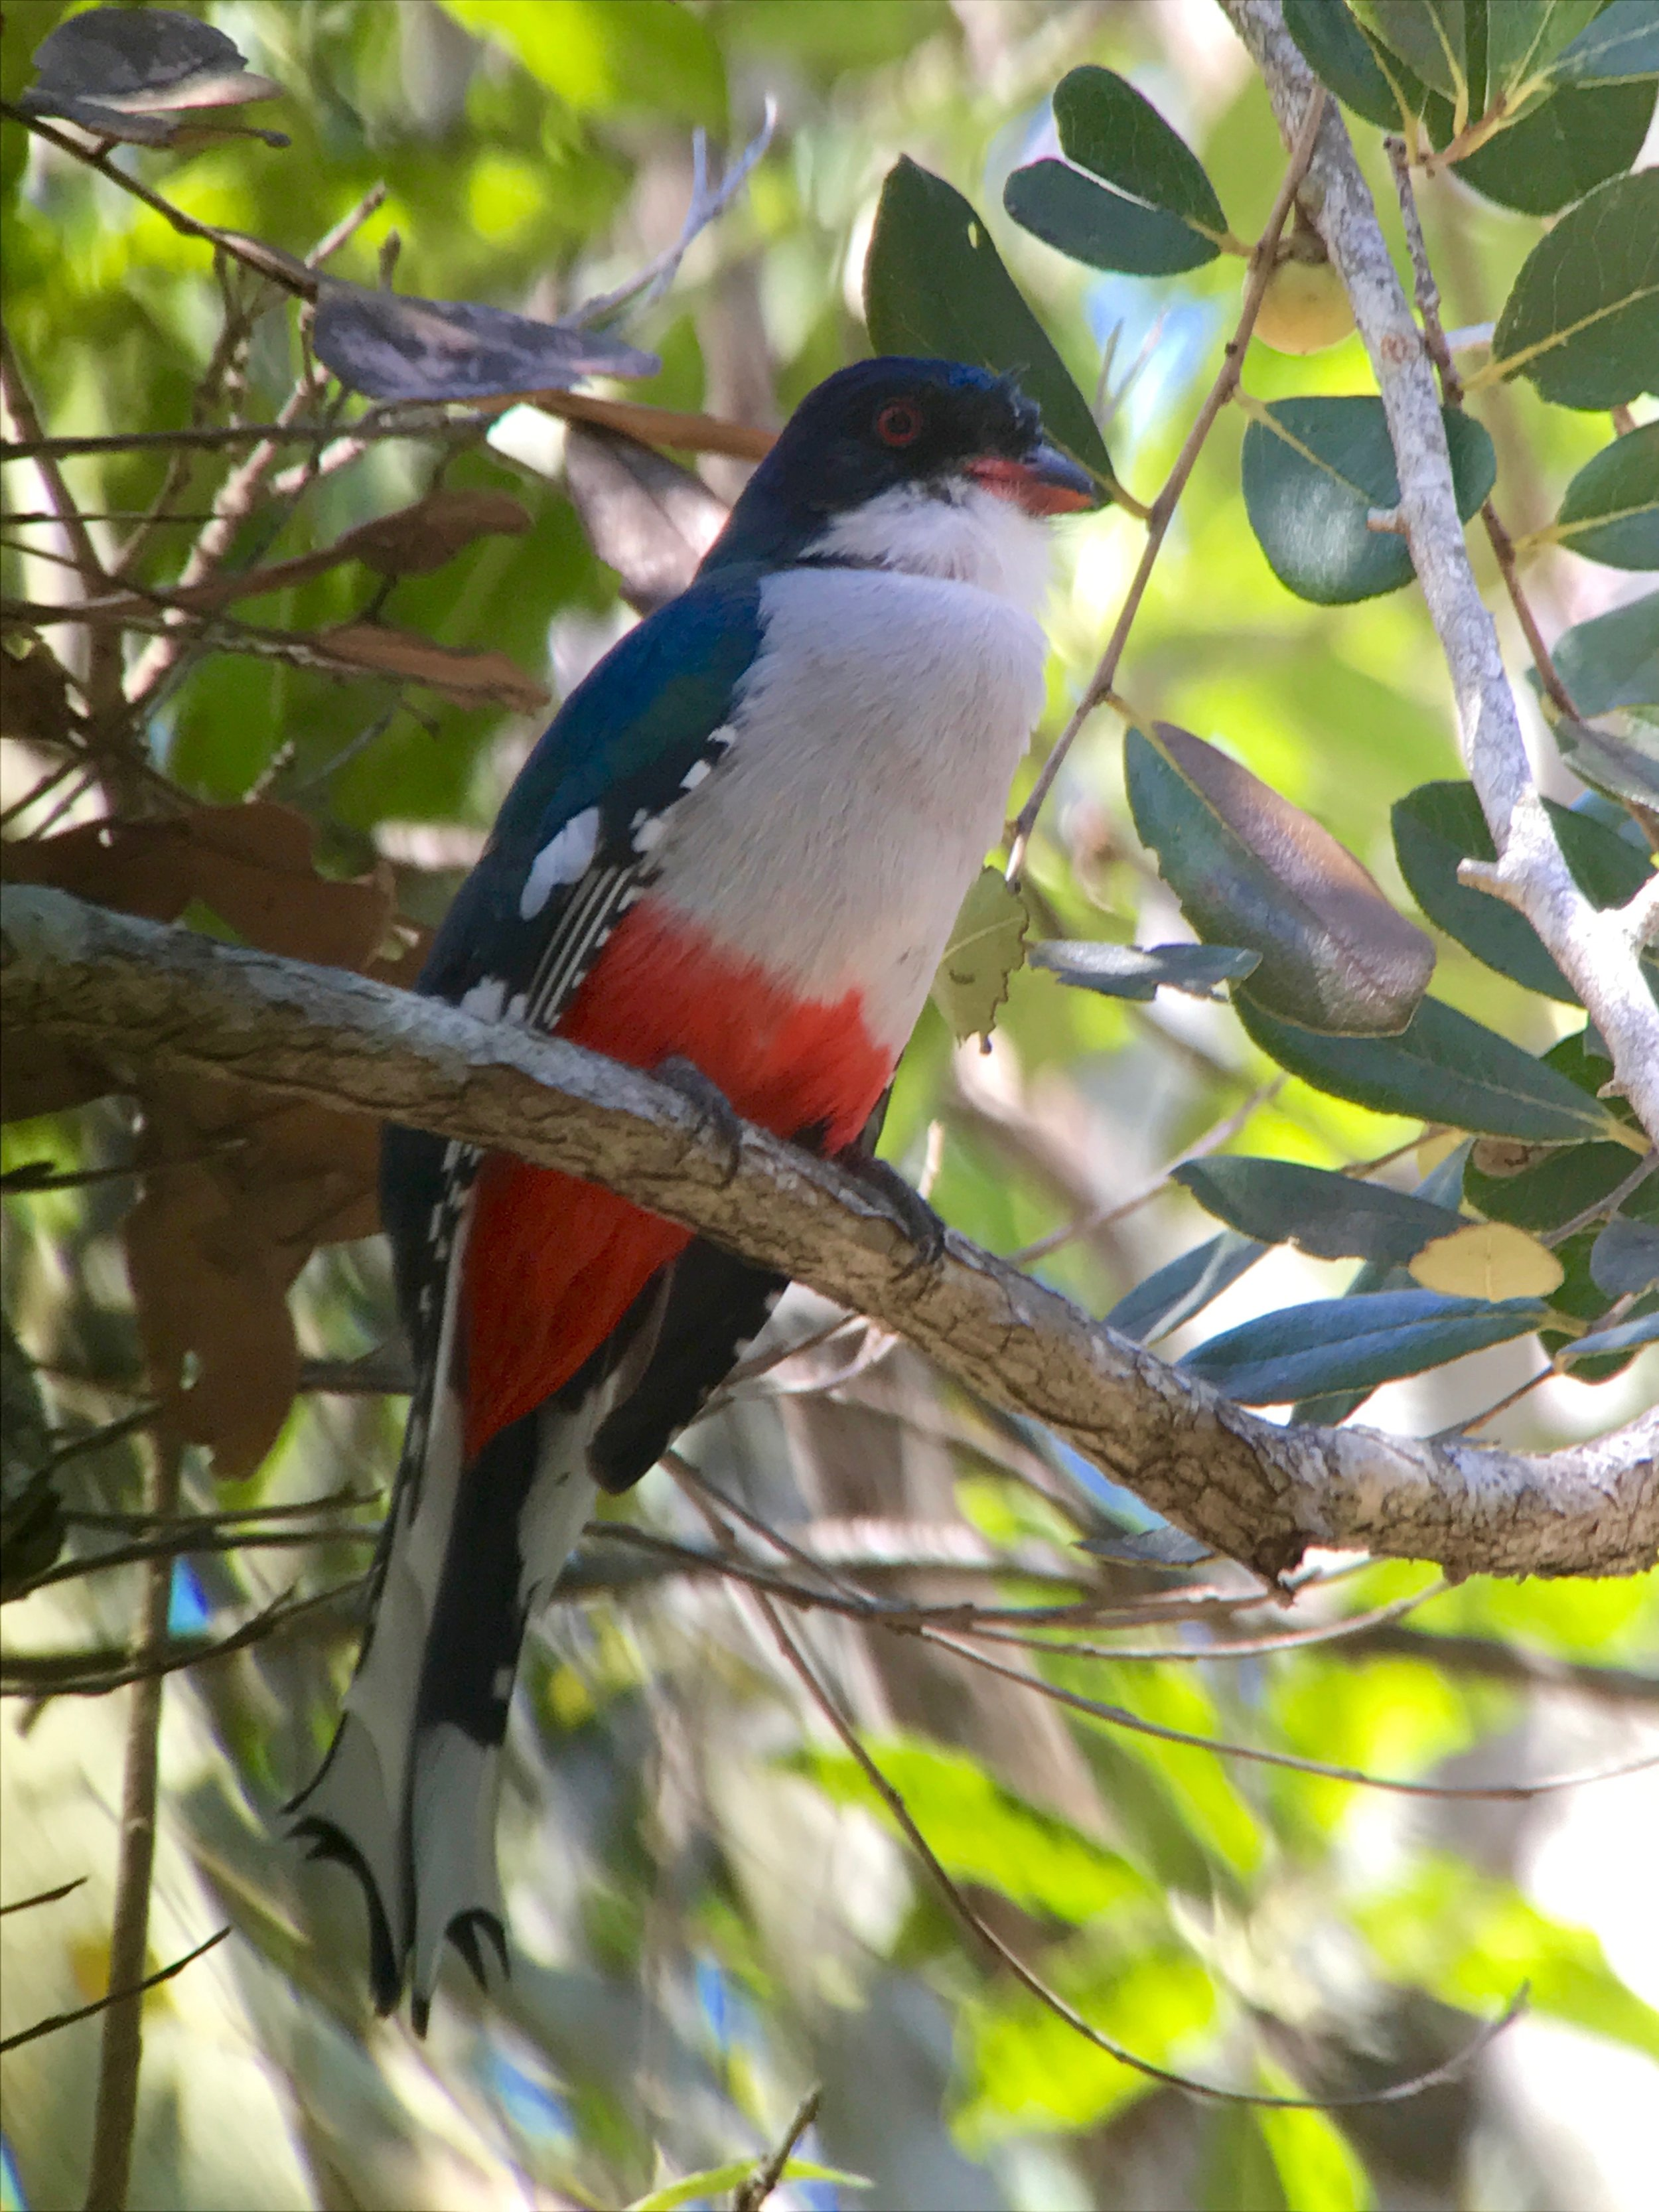 The Cuban trogon cannot be caged.